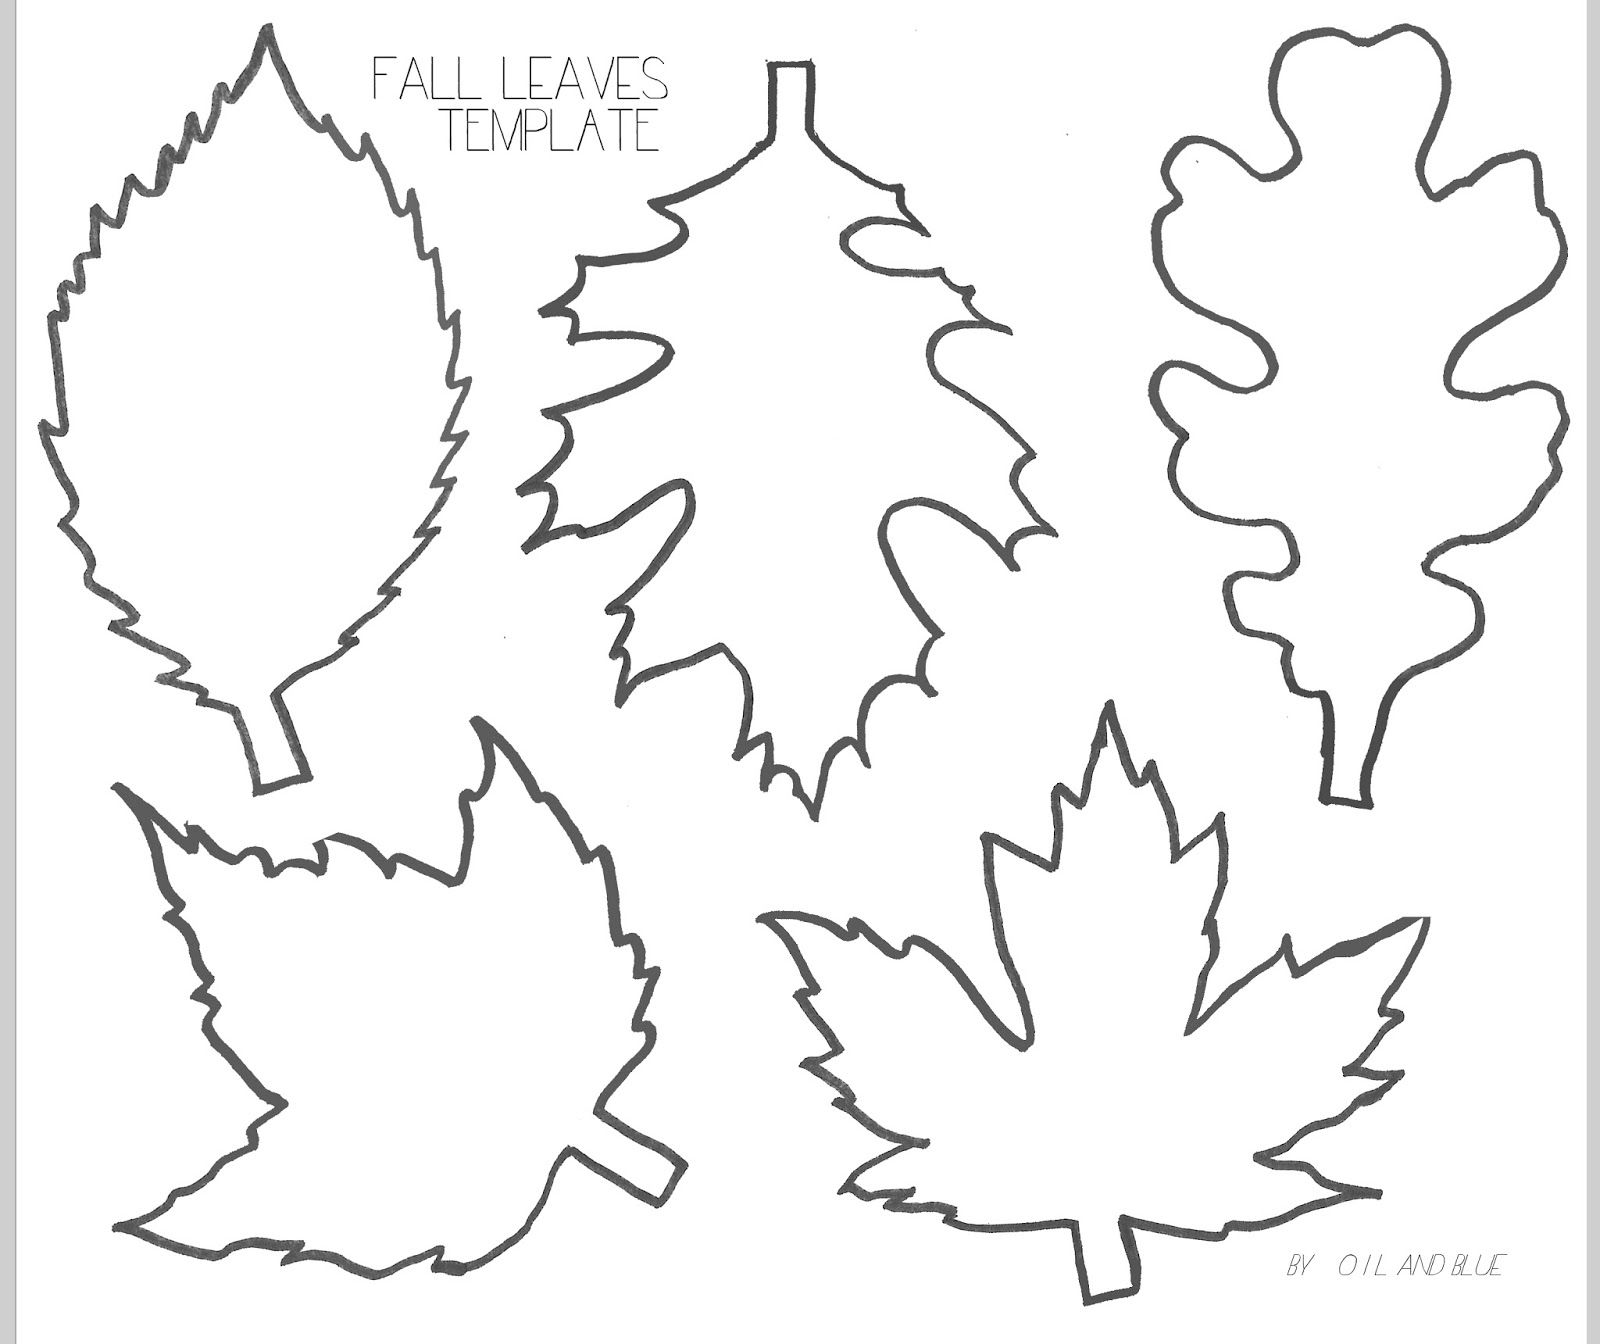 oil and blue fall leaf line drawing template for fall crafting and such - Printable Drawing Stencils